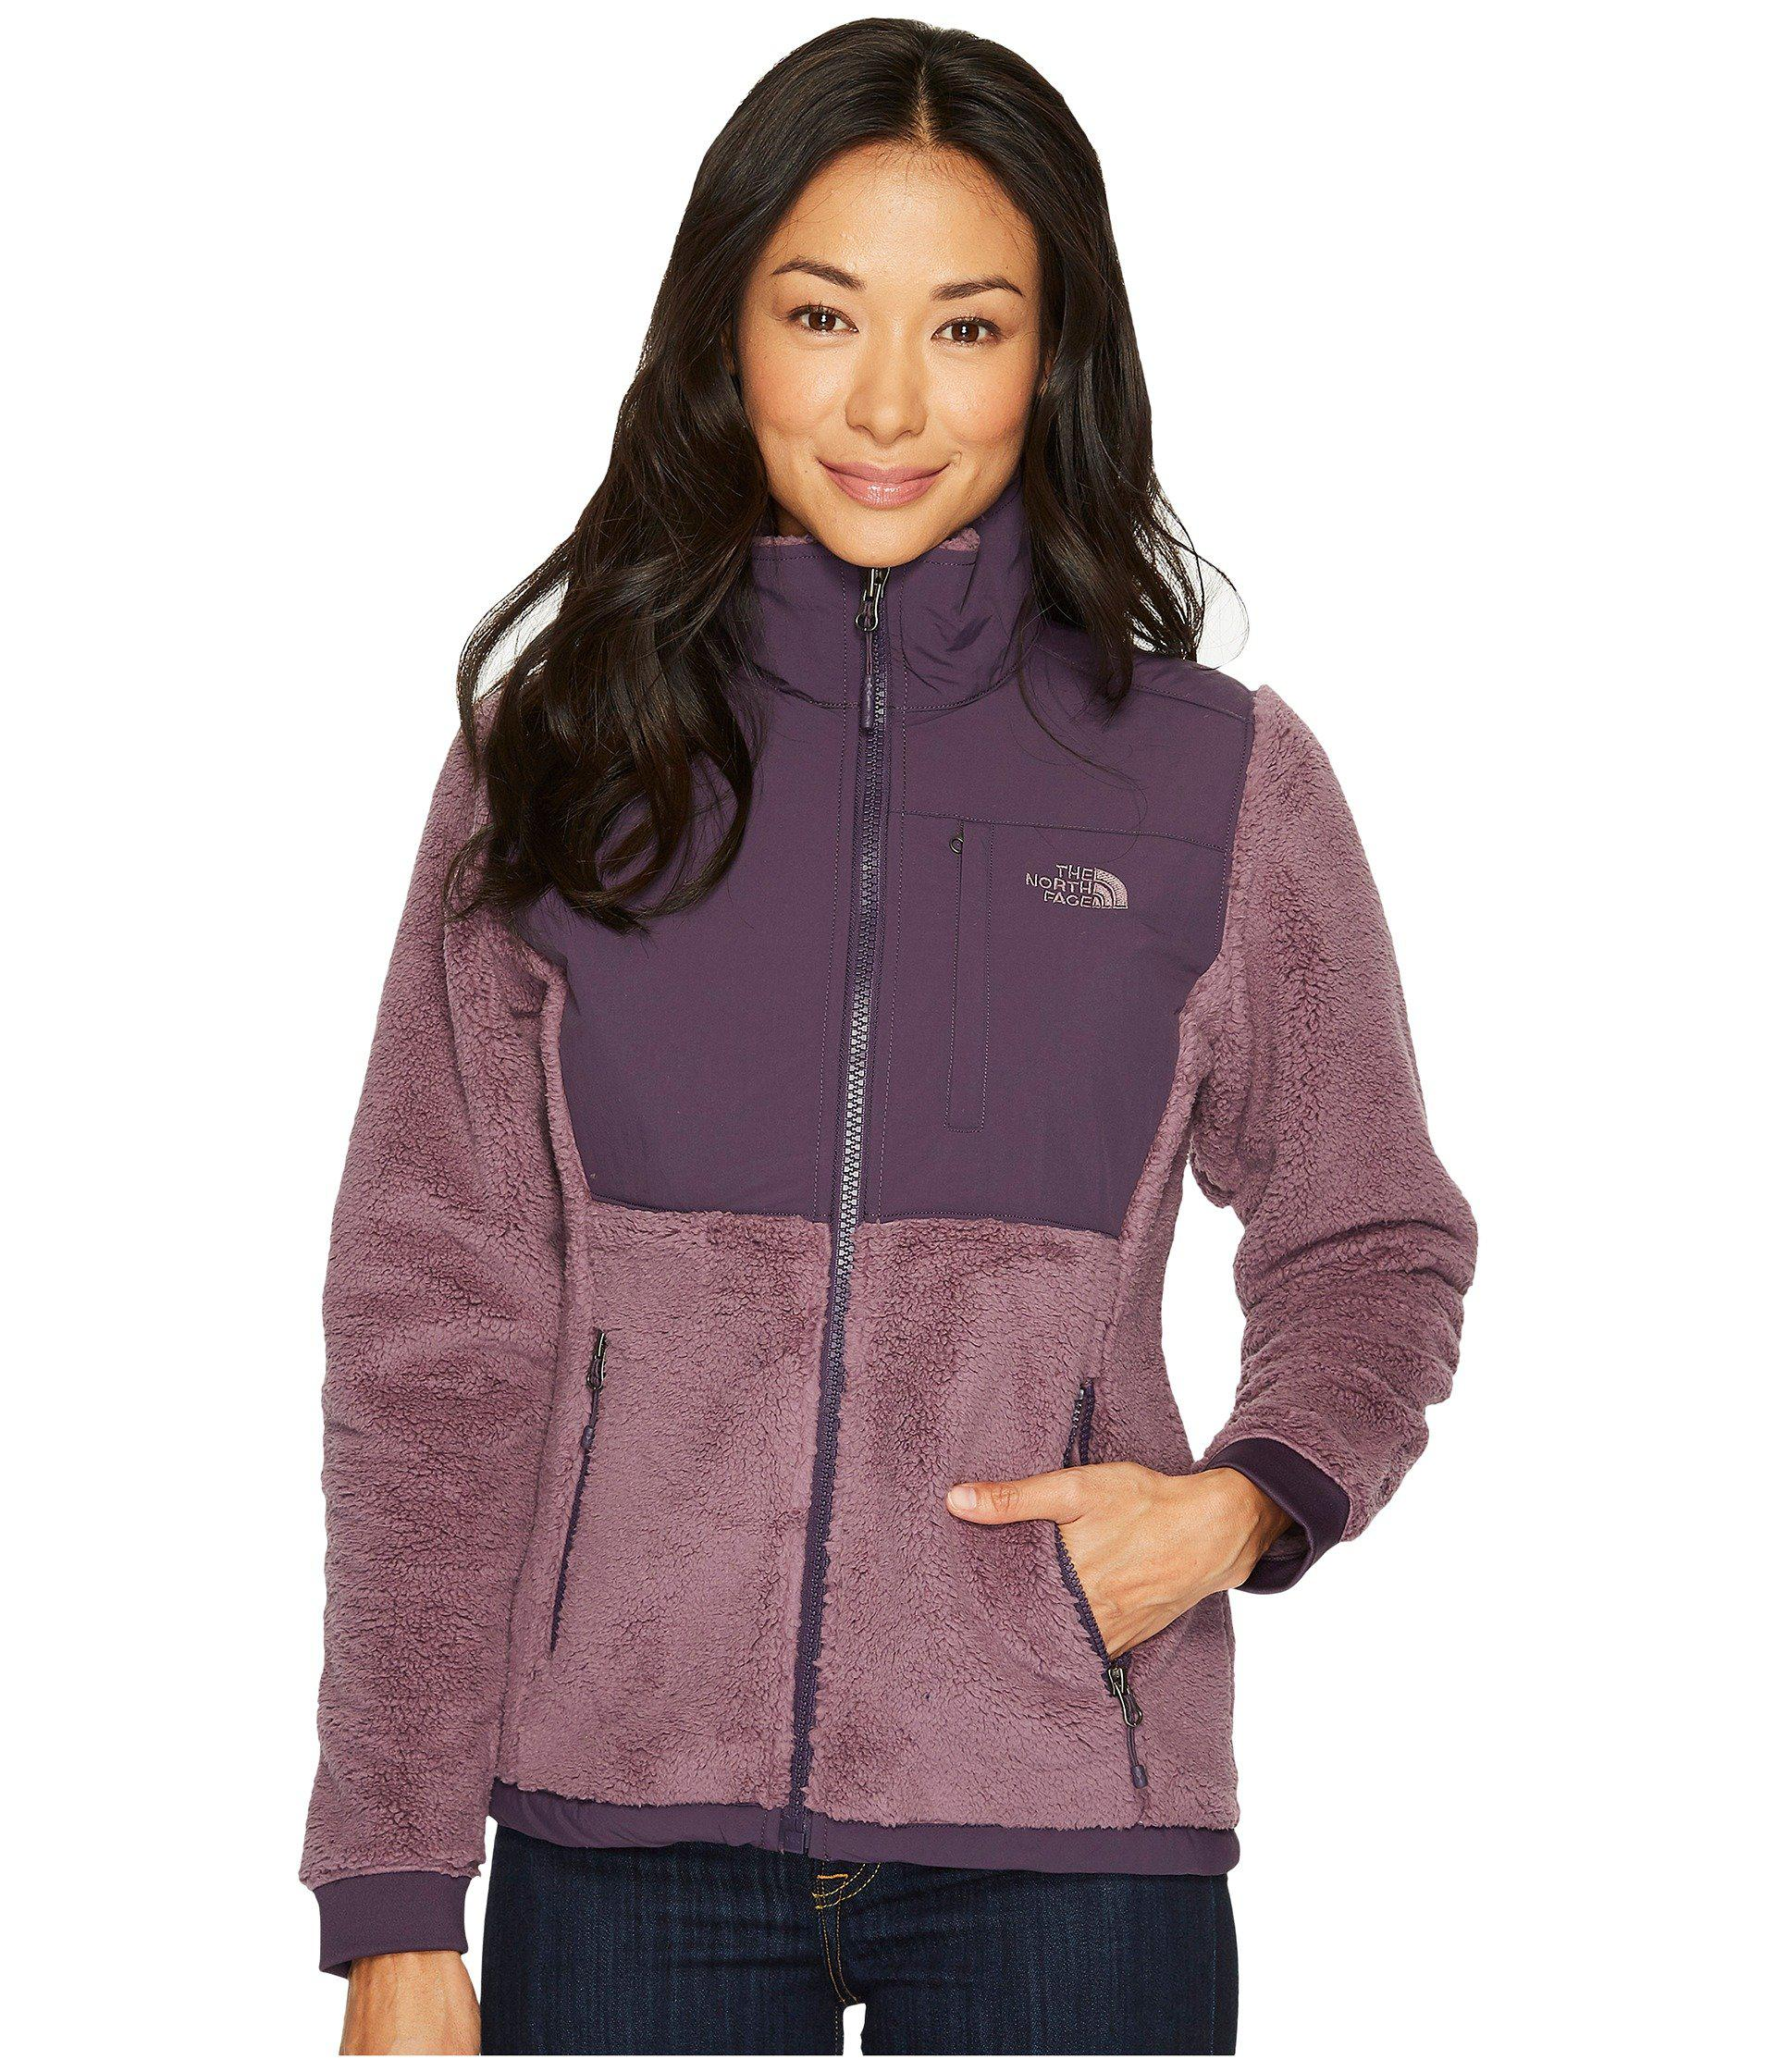 fb739e10a321 Lyst - The North Face Sherpa Denali Jacket in Purple - Save 43%